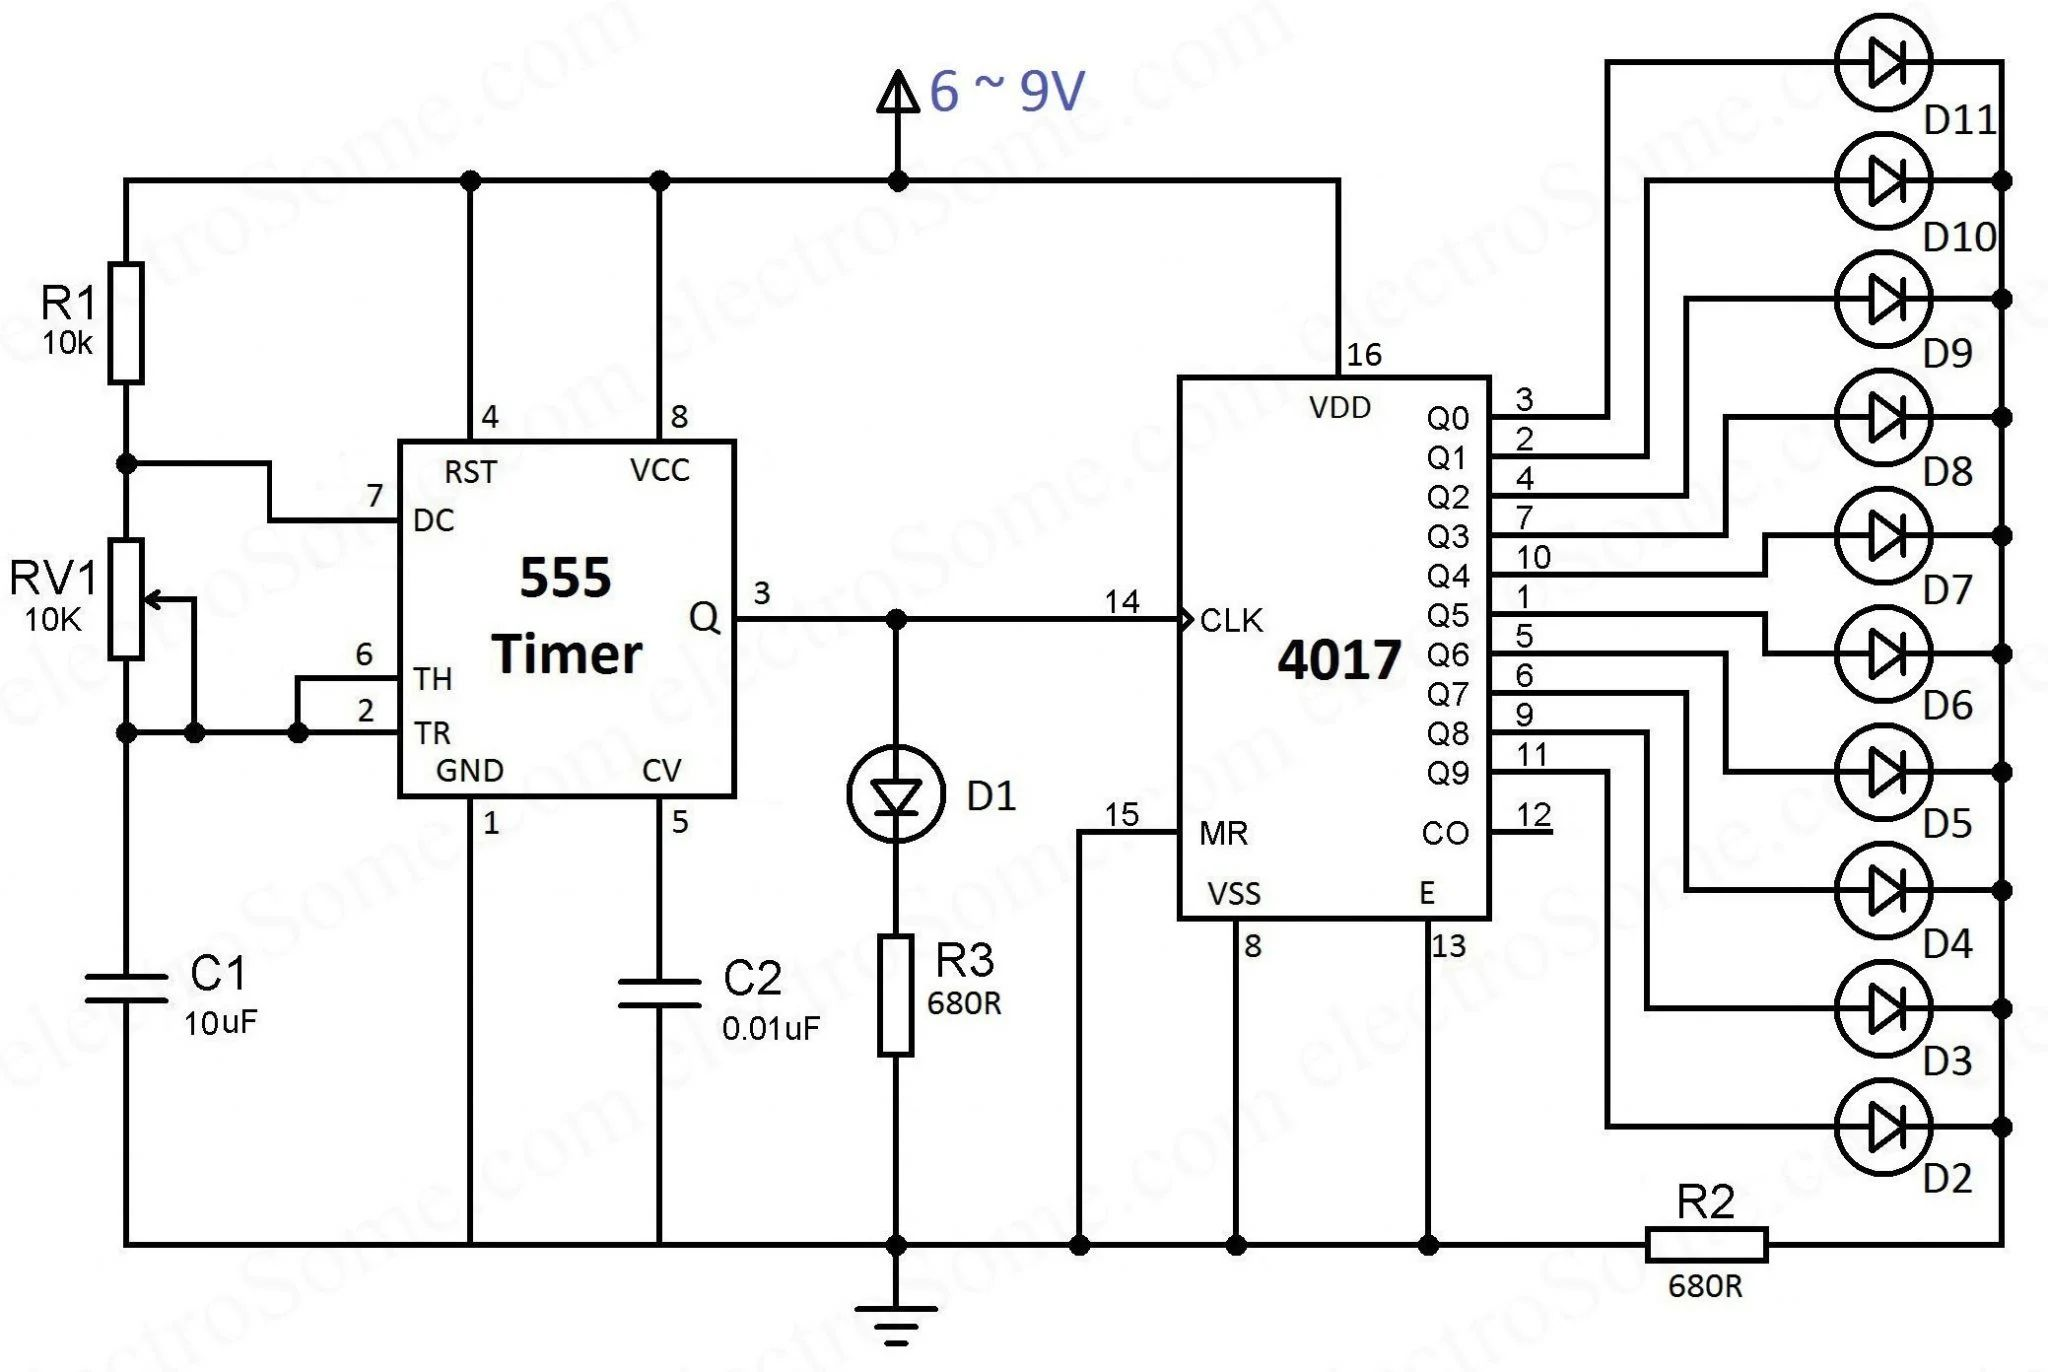 image led chaser circuit diagram download